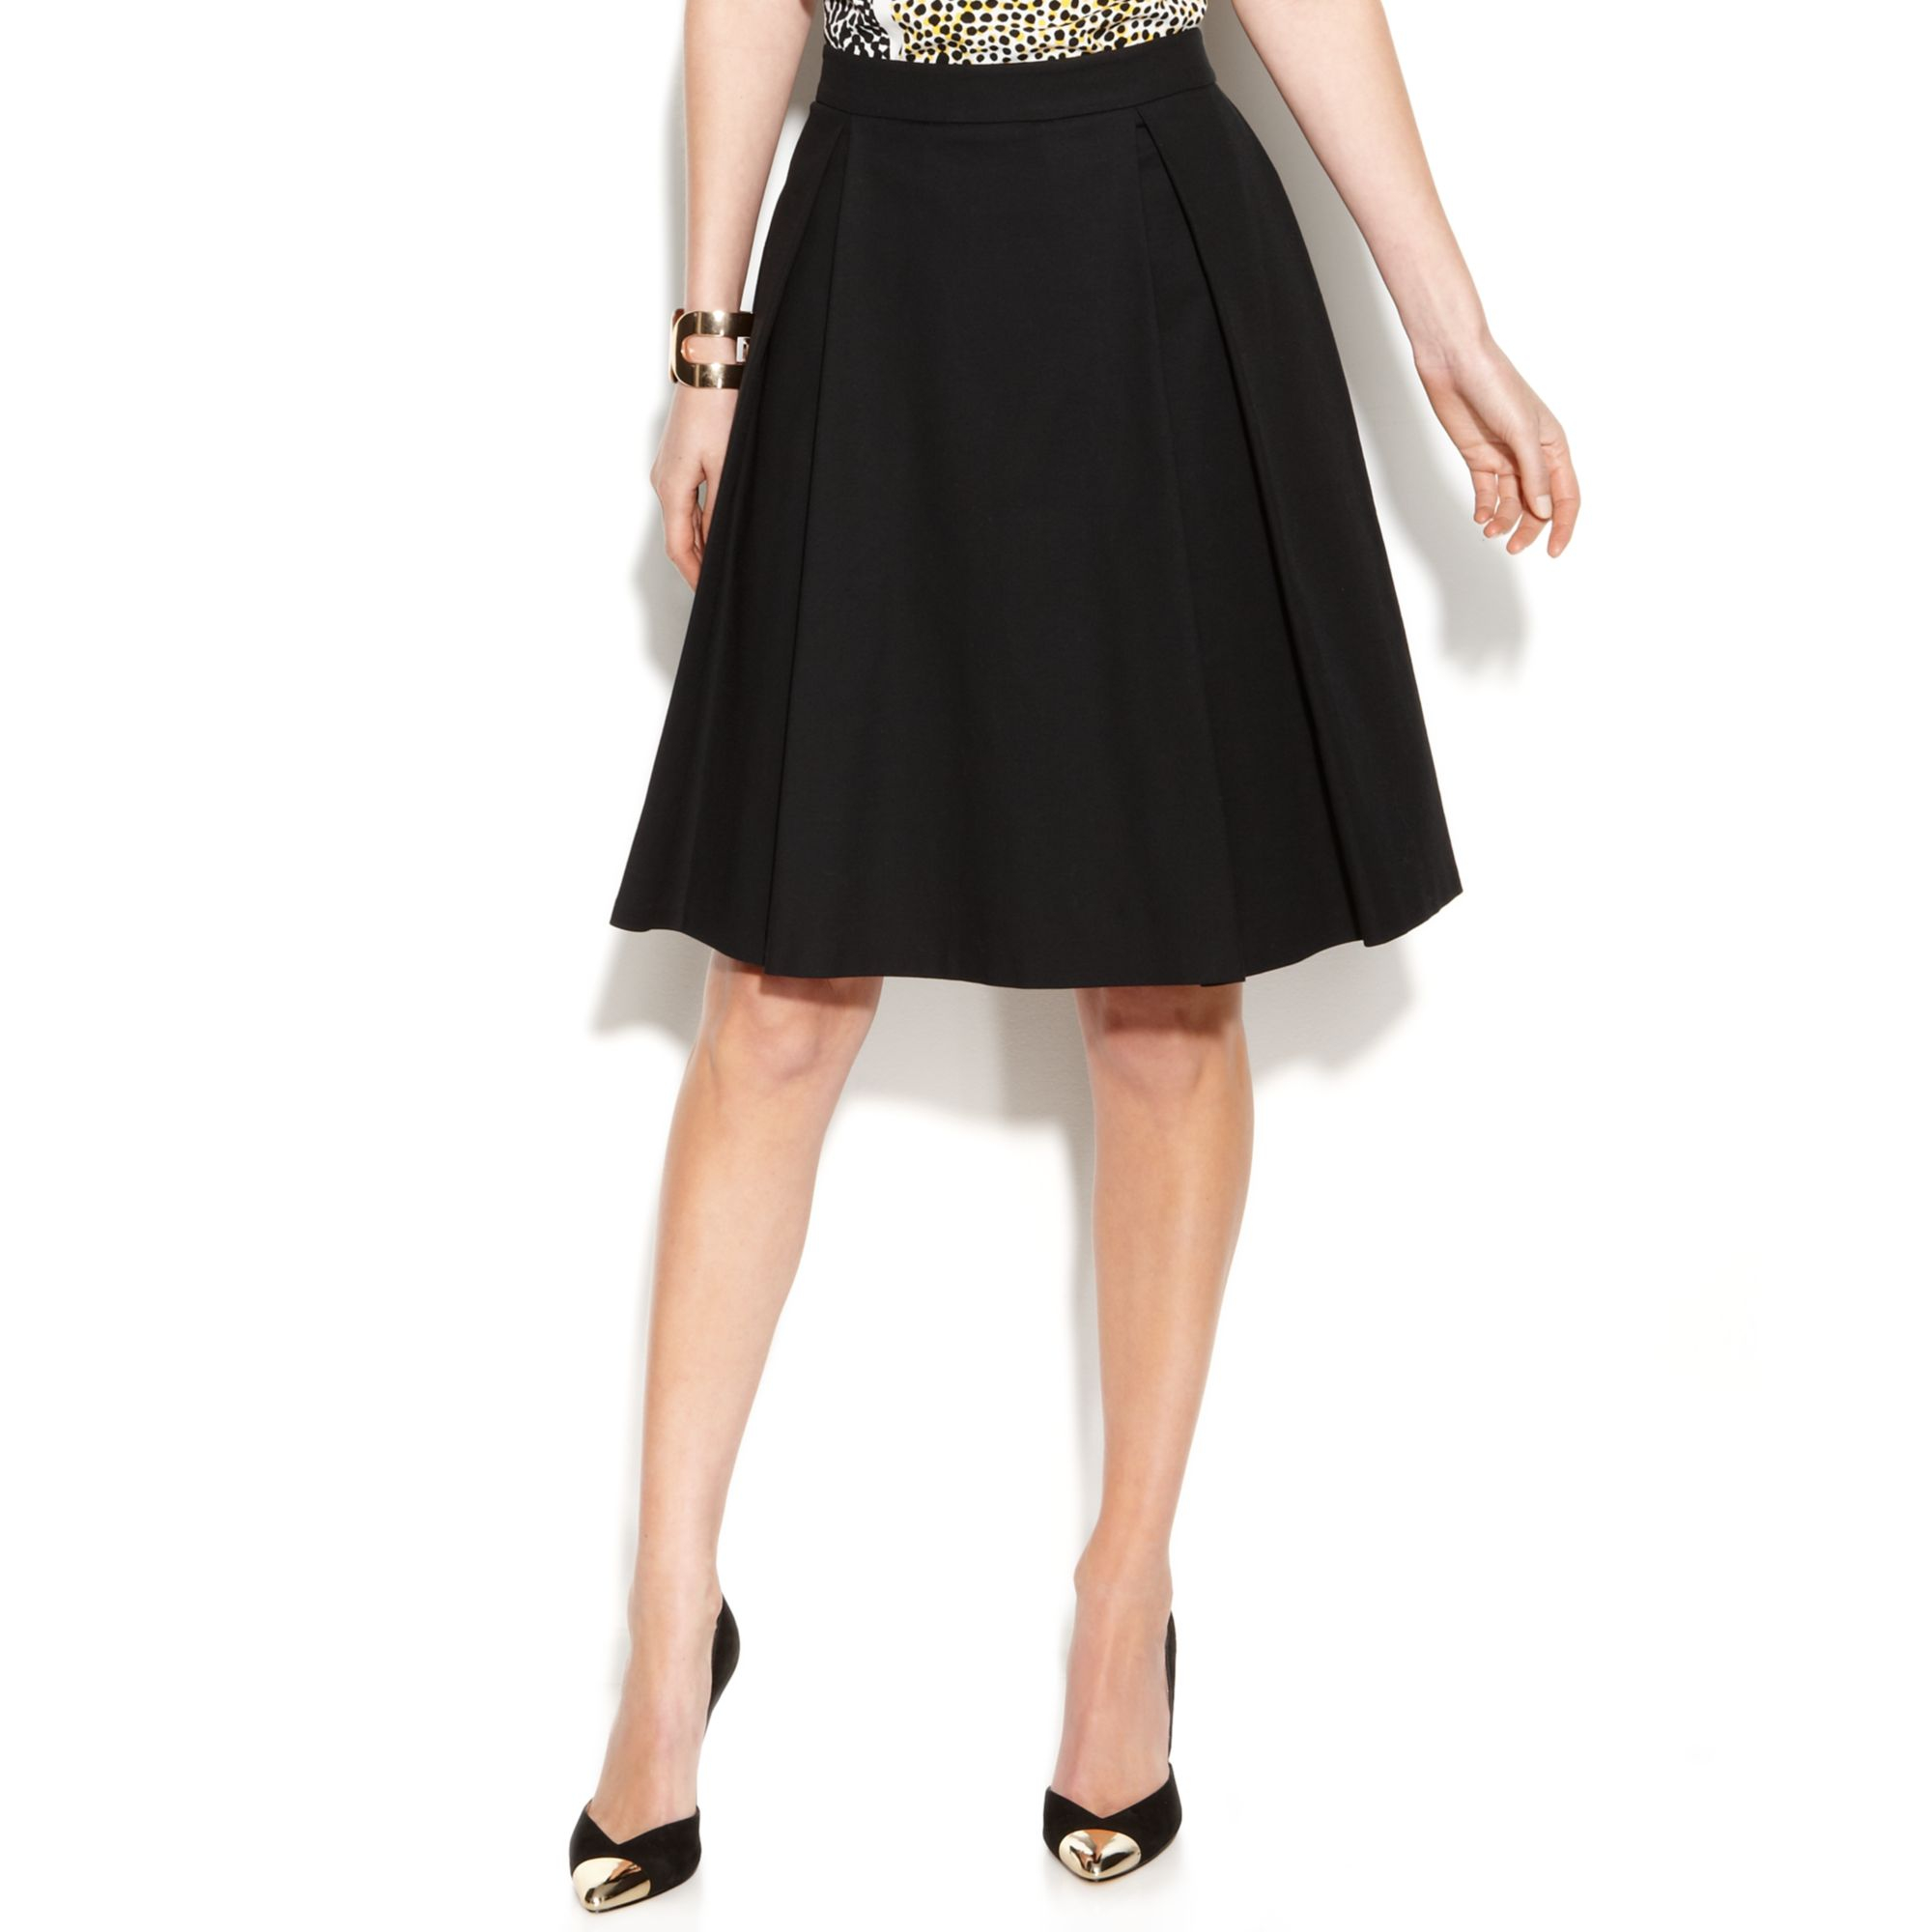 Vince camuto Pleated A-line Skirt in Black | Lyst